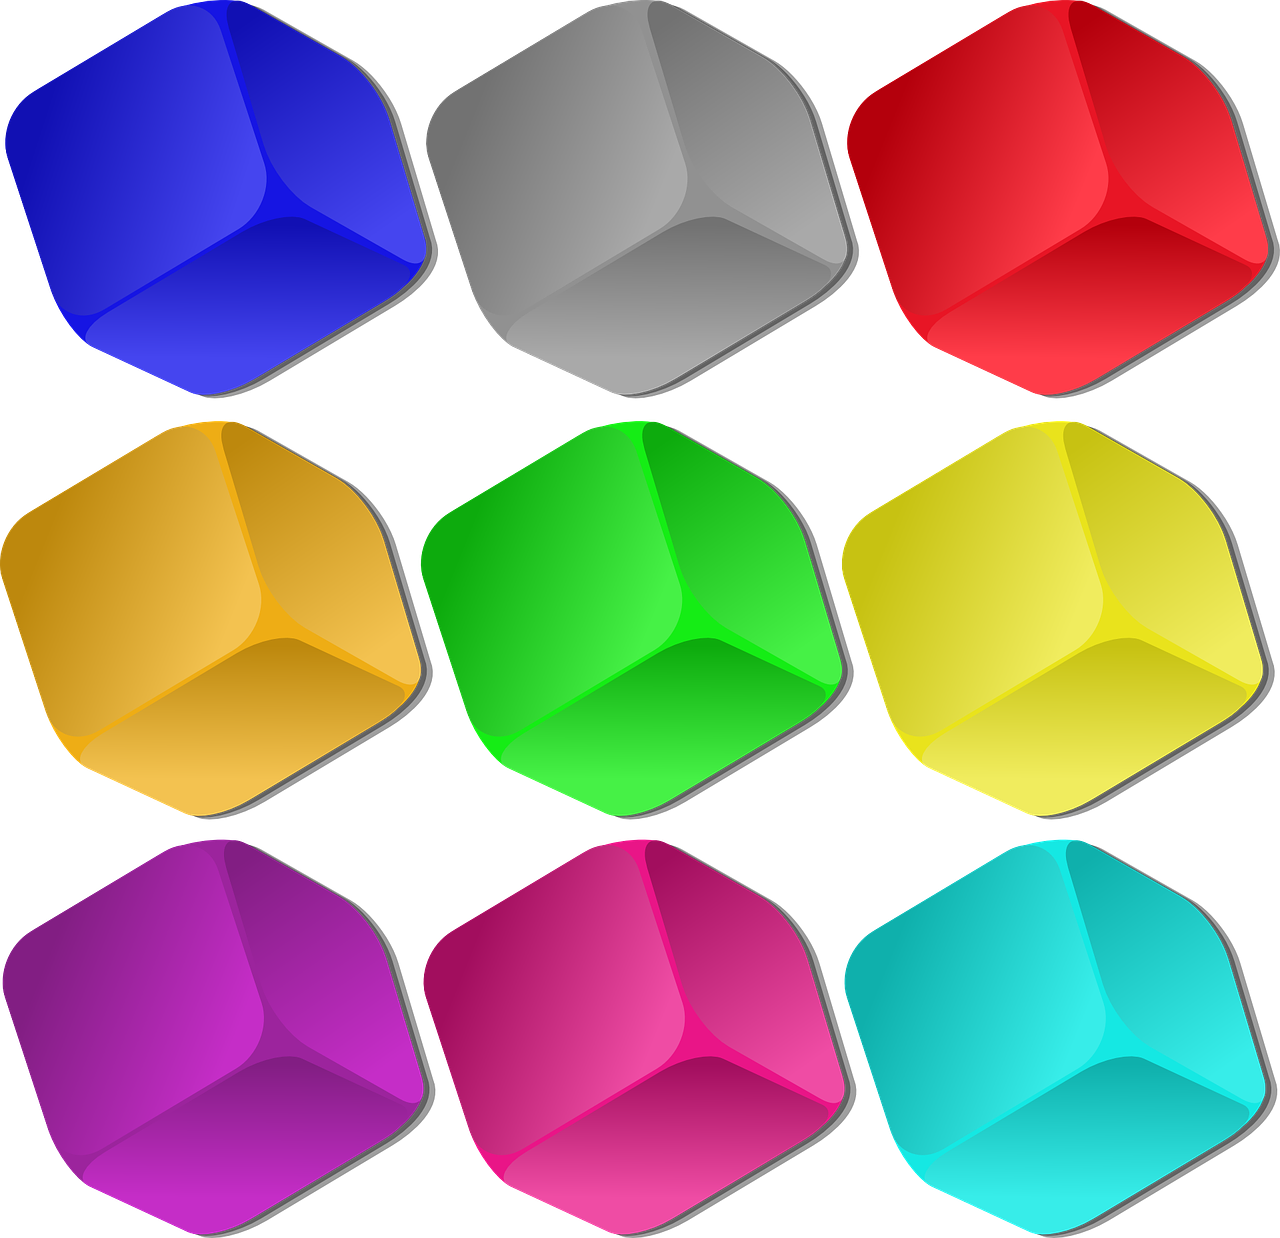 cubes colorful marbles free photo